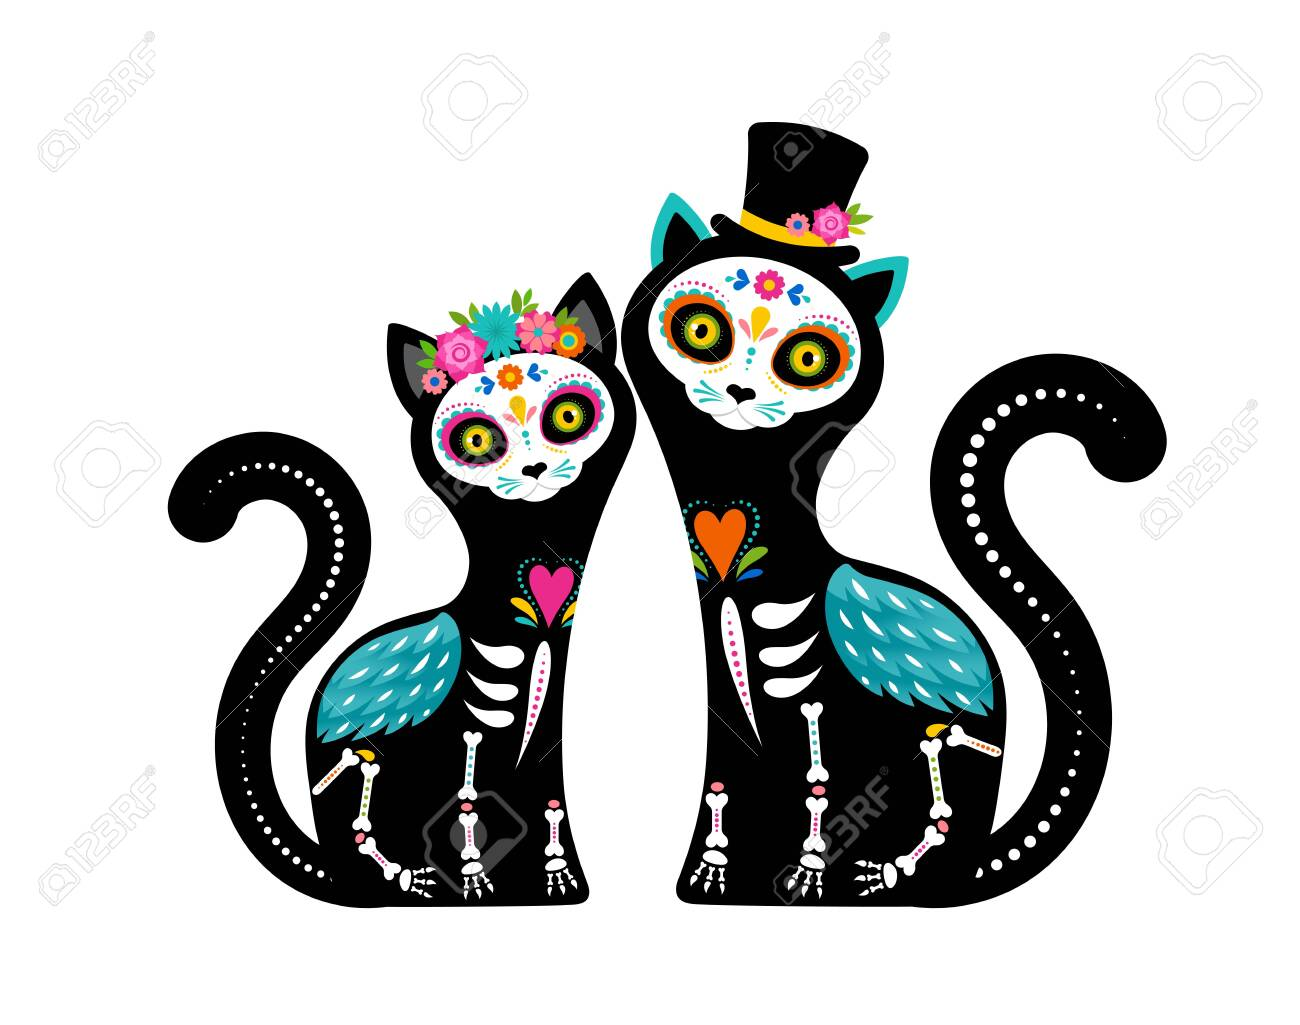 Day of the dead, Dia de los muertos, cats skulls and skeleton decorated with colorful Mexican elements and flowers. Fiesta, Halloween, holiday poster, party flyer. Vector illustration - 131222224